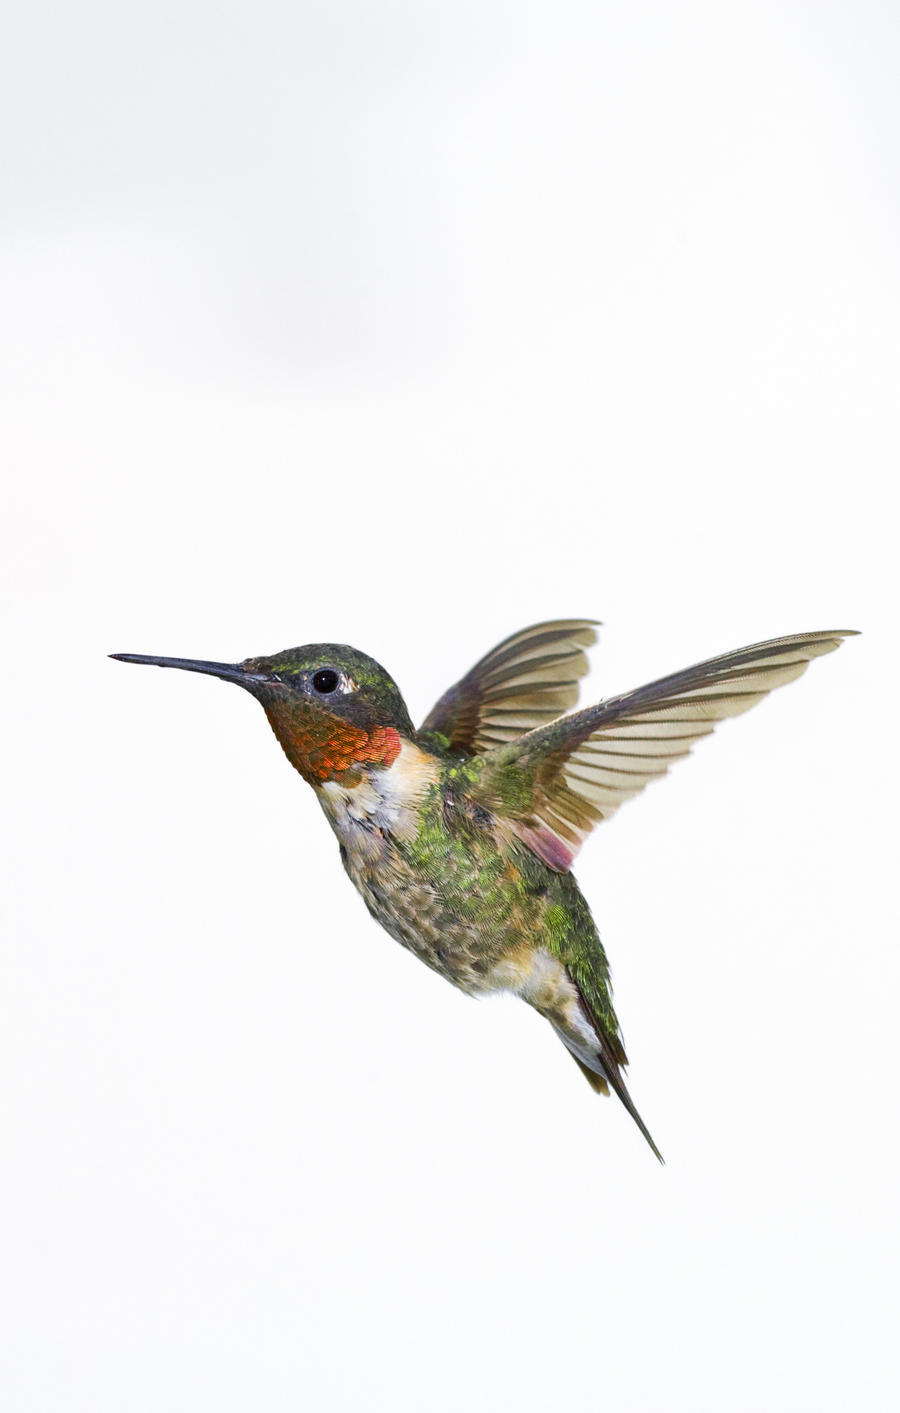 Hummingbird Drawings Step By Step: Ruby-Throated Hummingbird (Archilochus Colubris). Adult